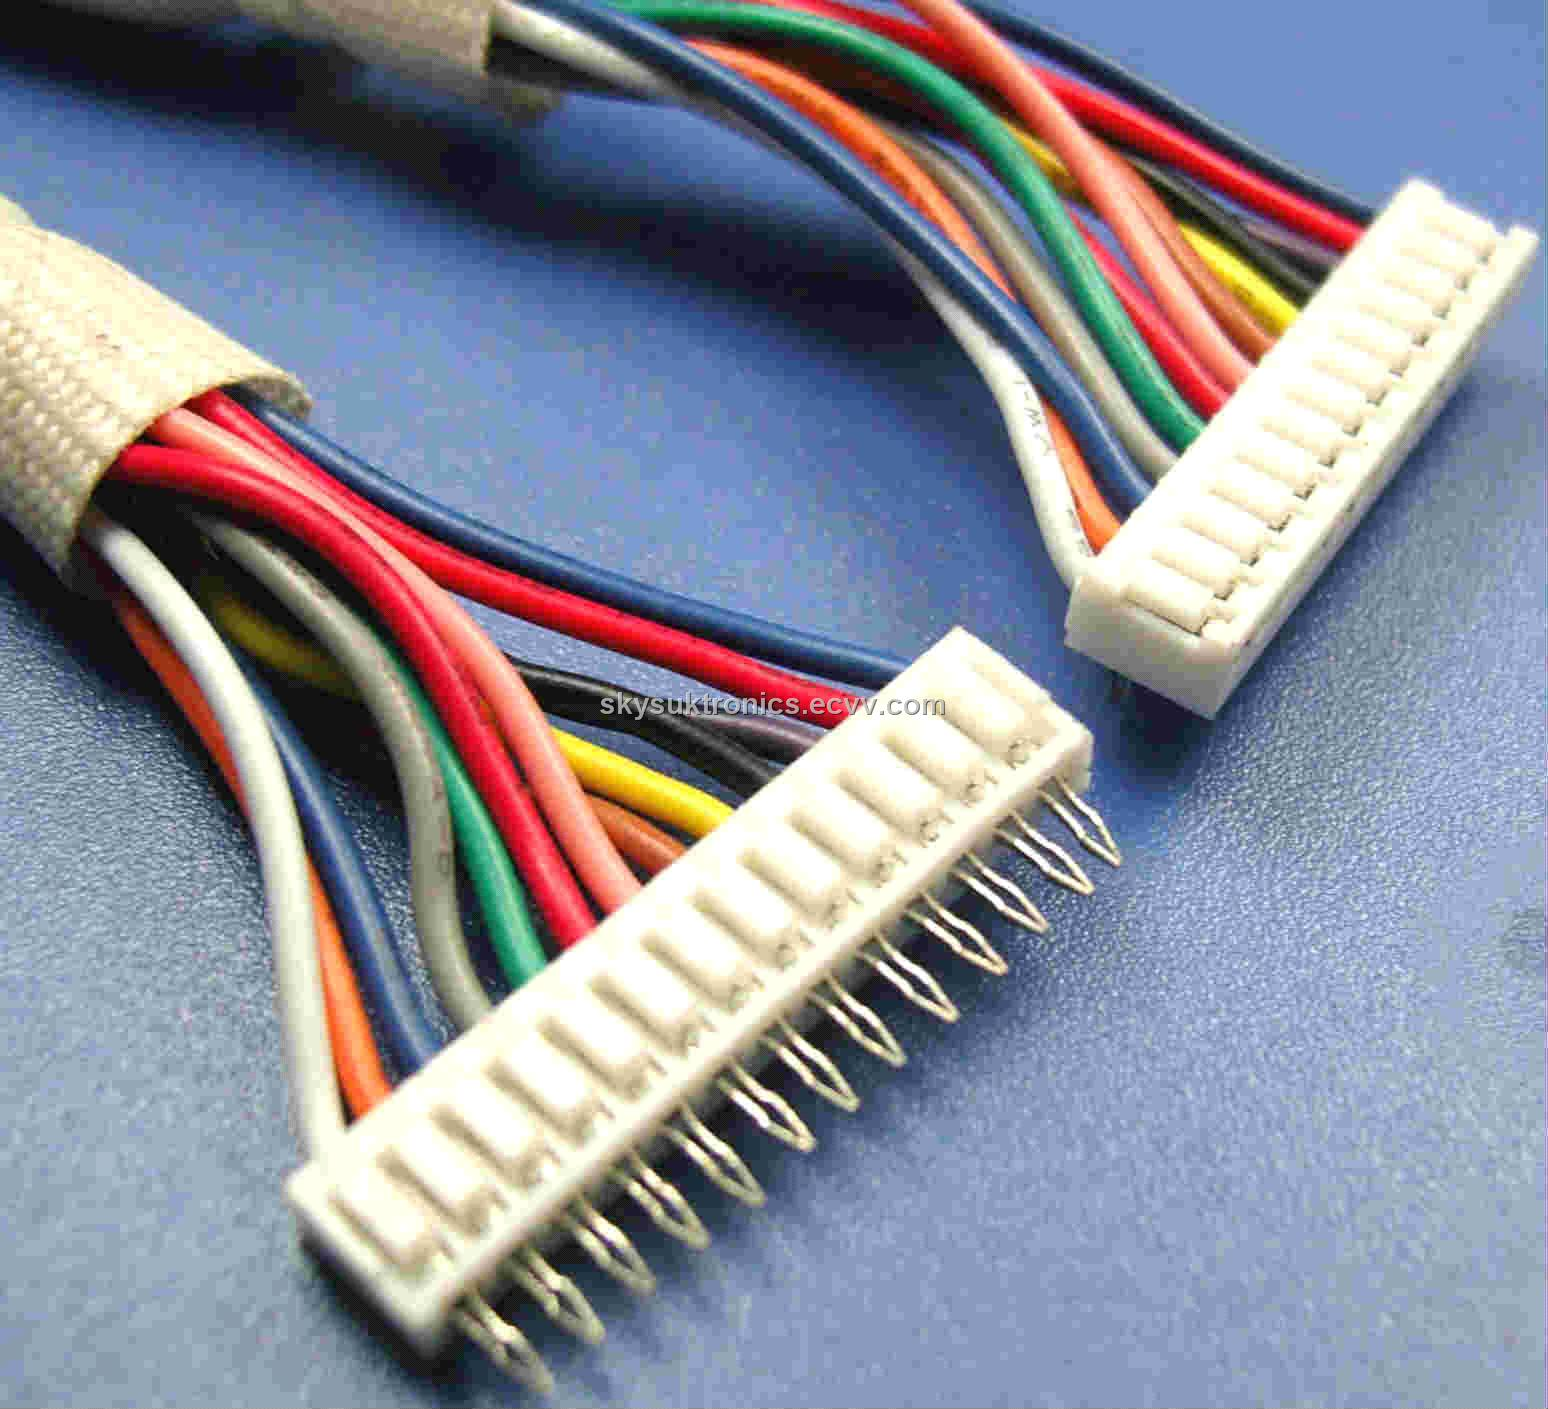 Cable Harness Board : Cable and harness board products get free image about